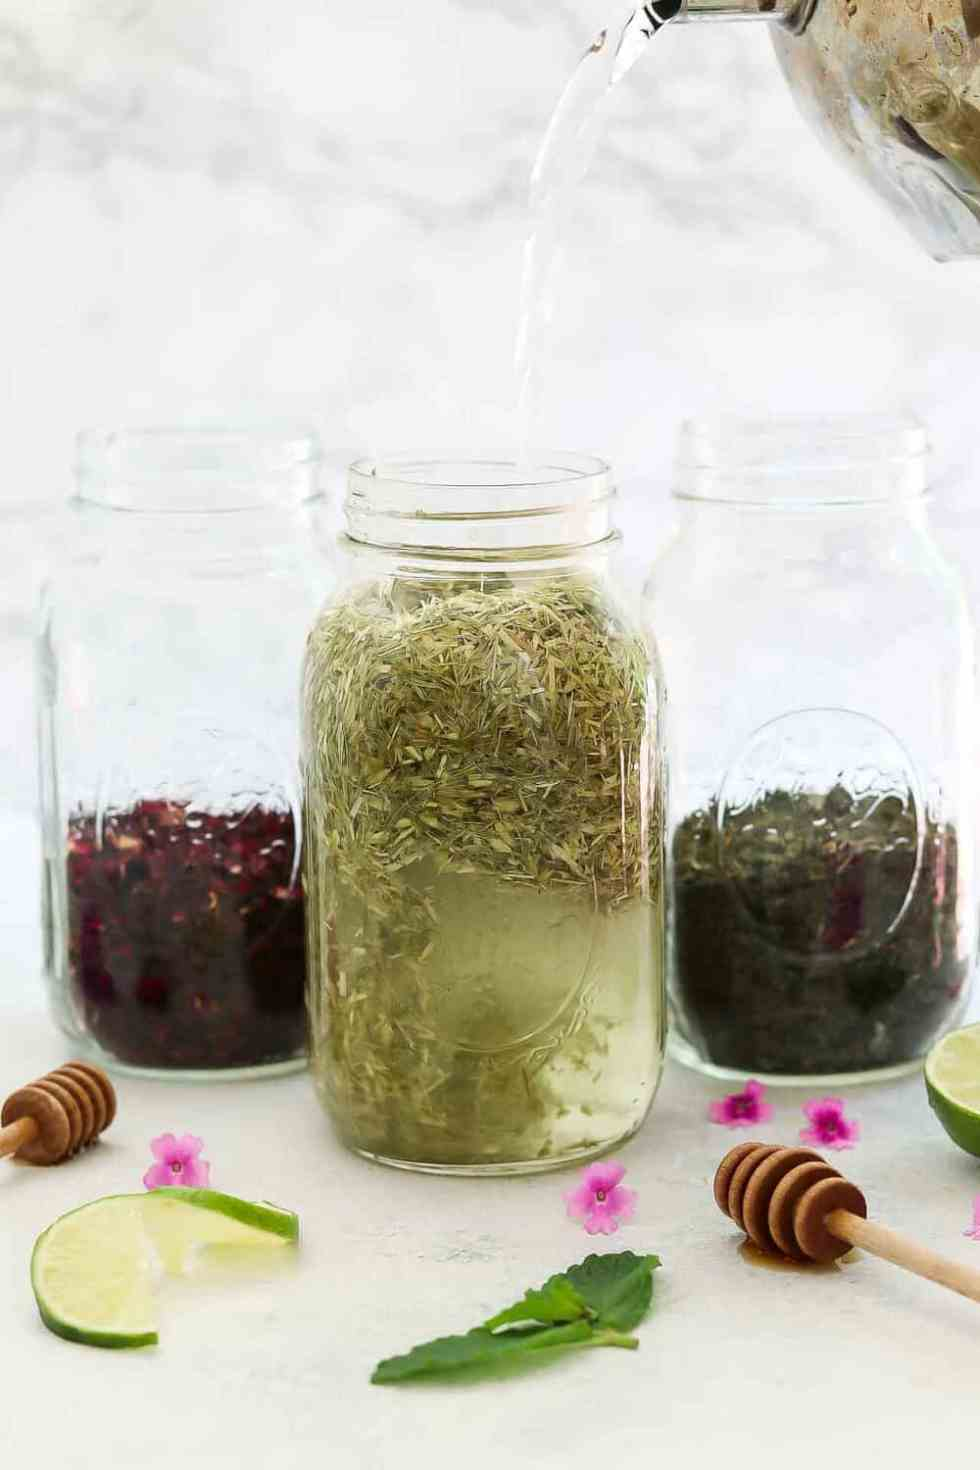 Pouring water in a jar filled with herbs.